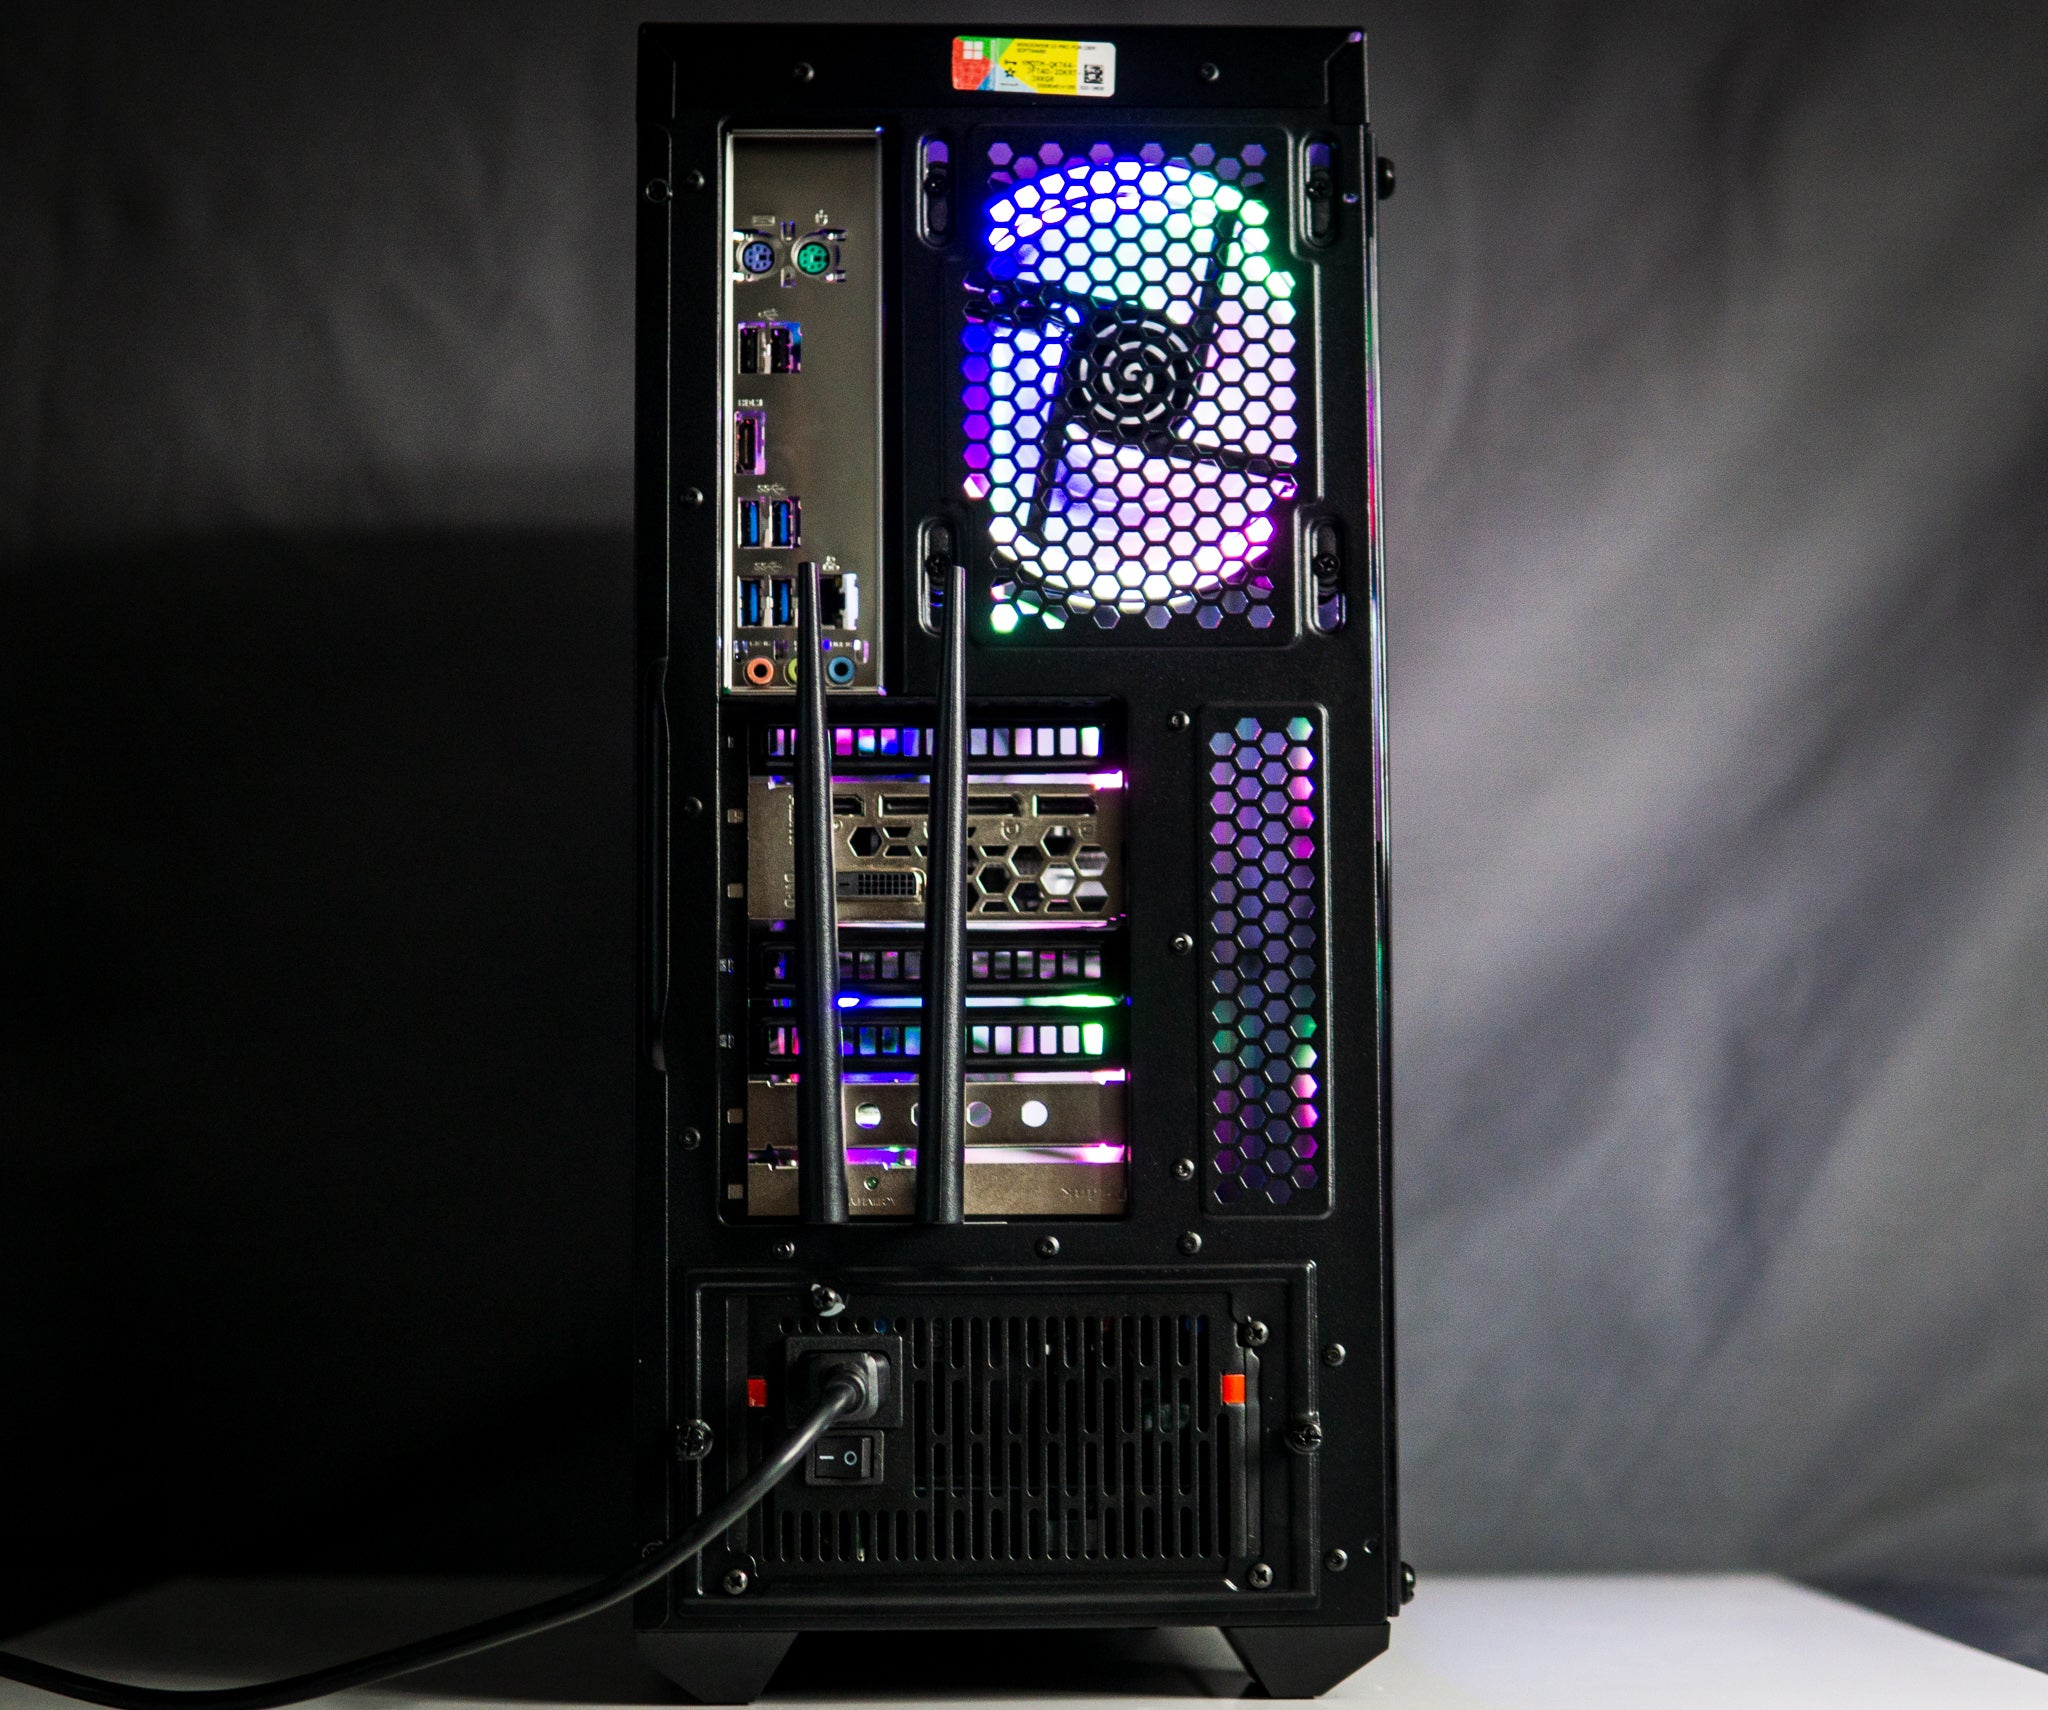 Custom VR Gaming PC Radeon AMD RX 570, 8GB RAM 256GB NVMe SSD RGB 1080P